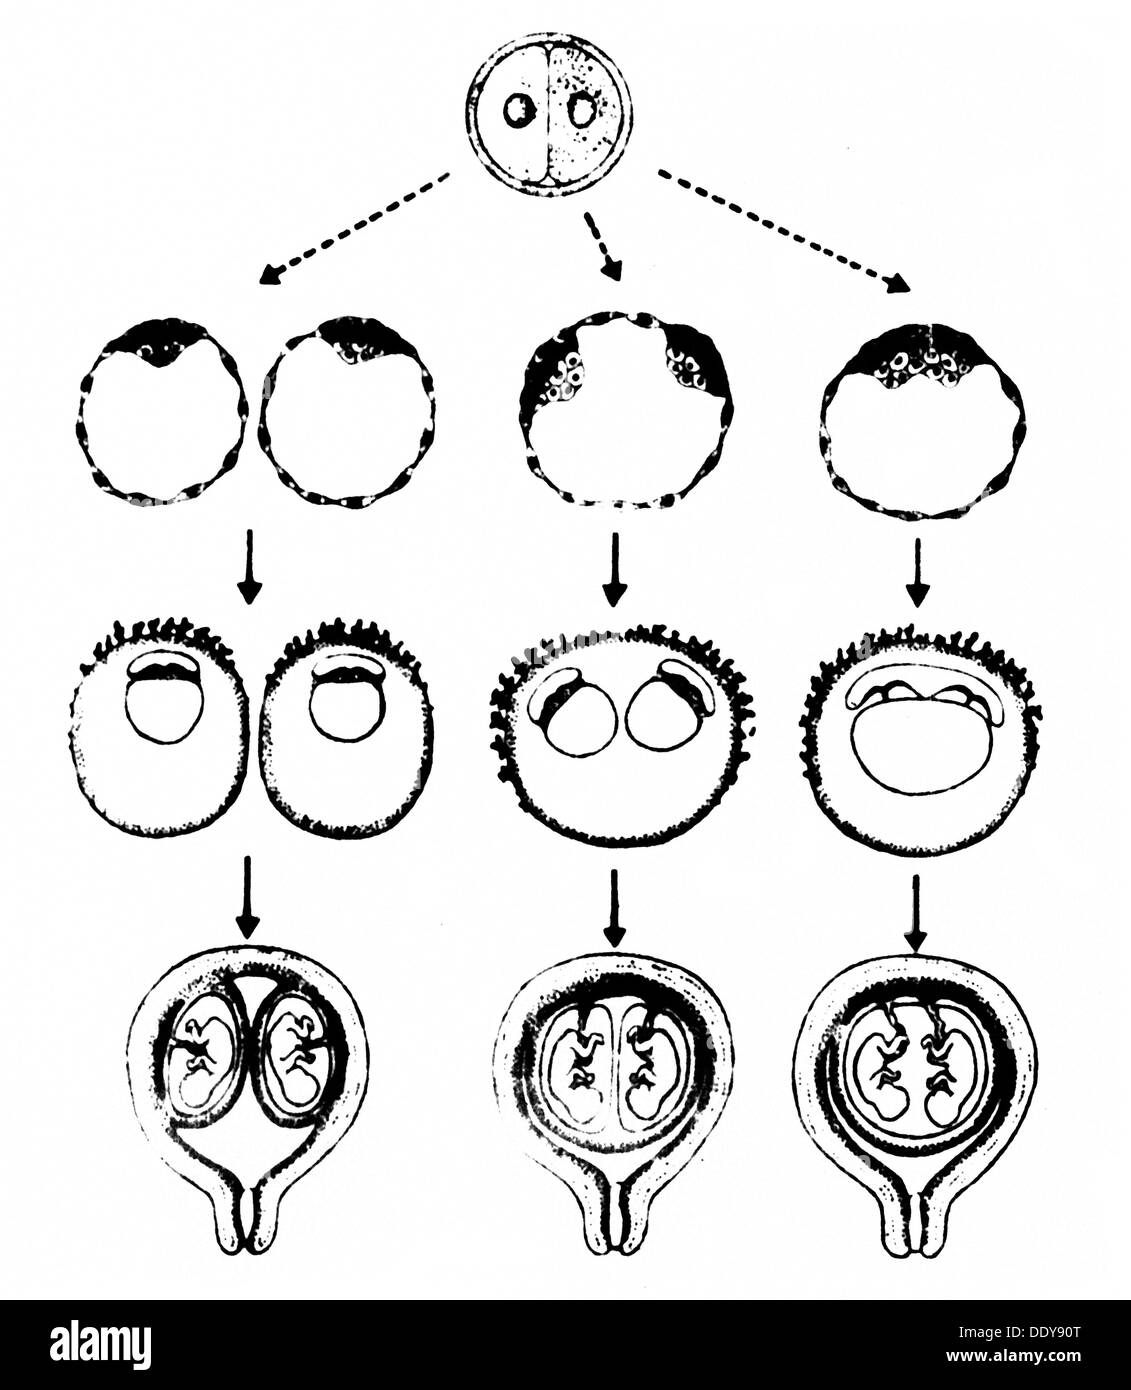 People twins schematic diagram of the possible development of people twins schematic diagram of the possible development of monozygotic twins drawing from zeitschrift fuer klinische pooptronica Image collections